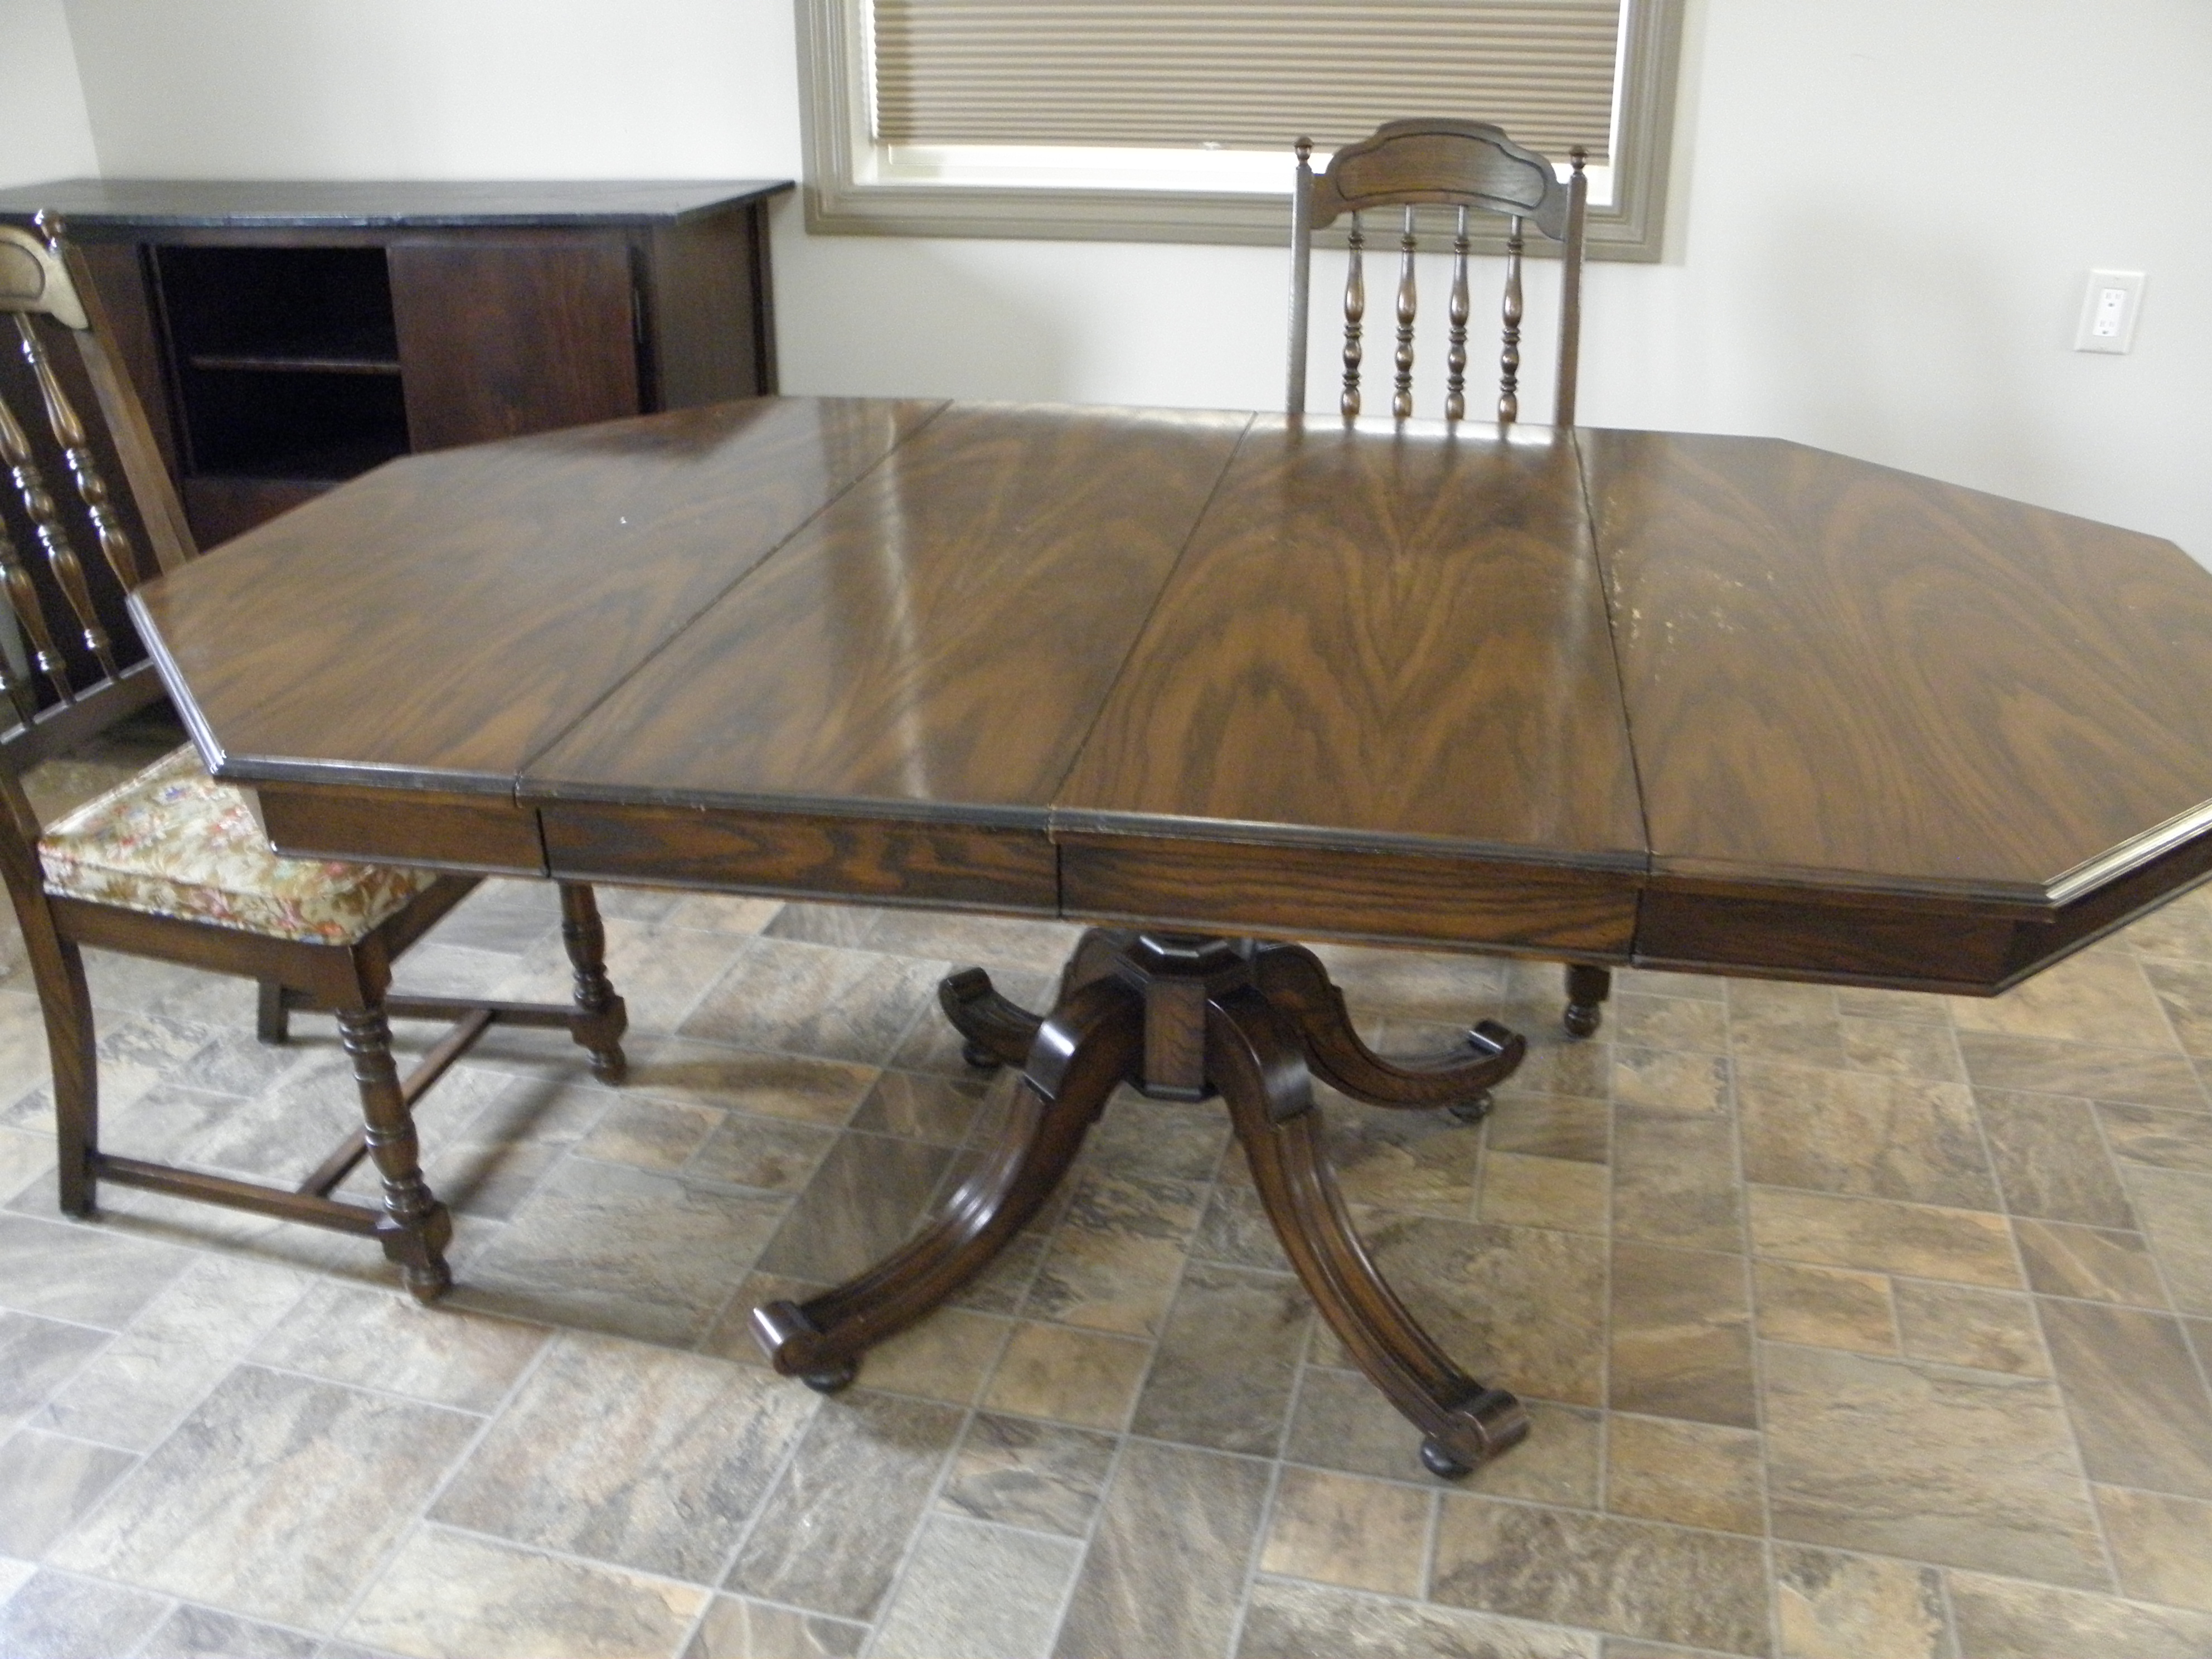 Oak Dining Table w/4 Chairs